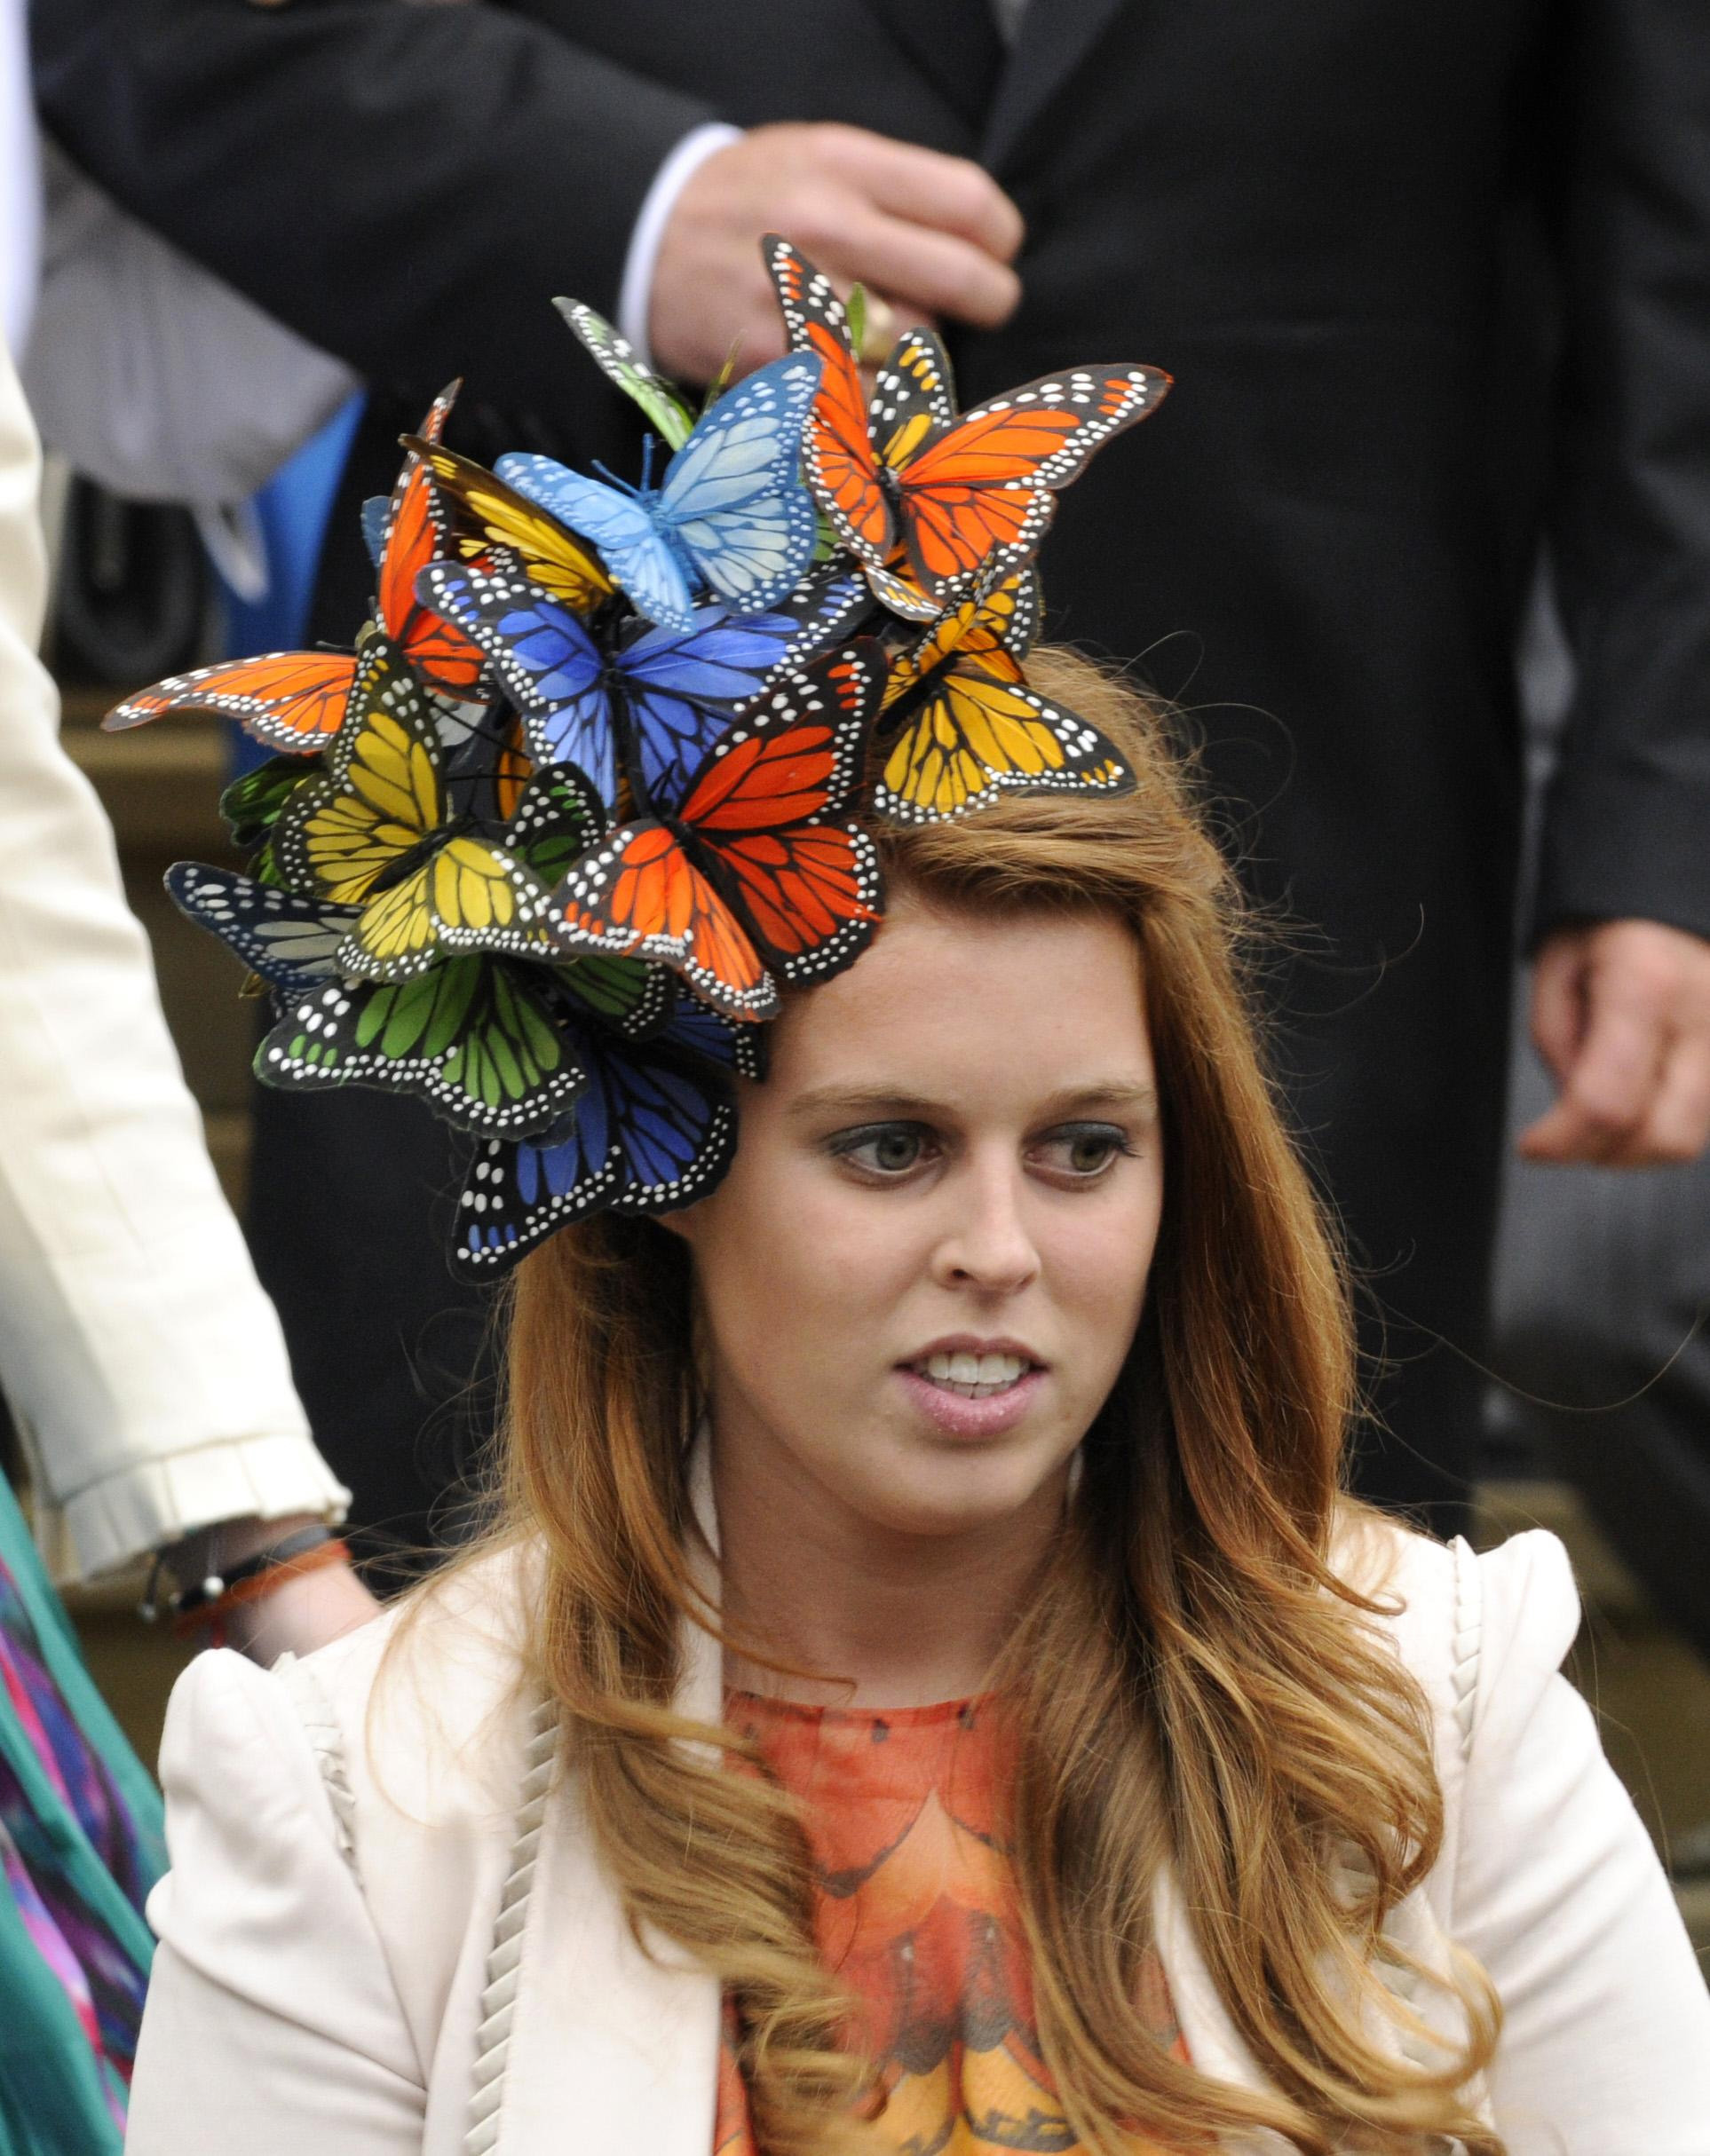 Princess Beatrice outside St. George's Chapel in Windsor, England, after the marriage ceremony of Peter Phillips and Autumn Kelly.